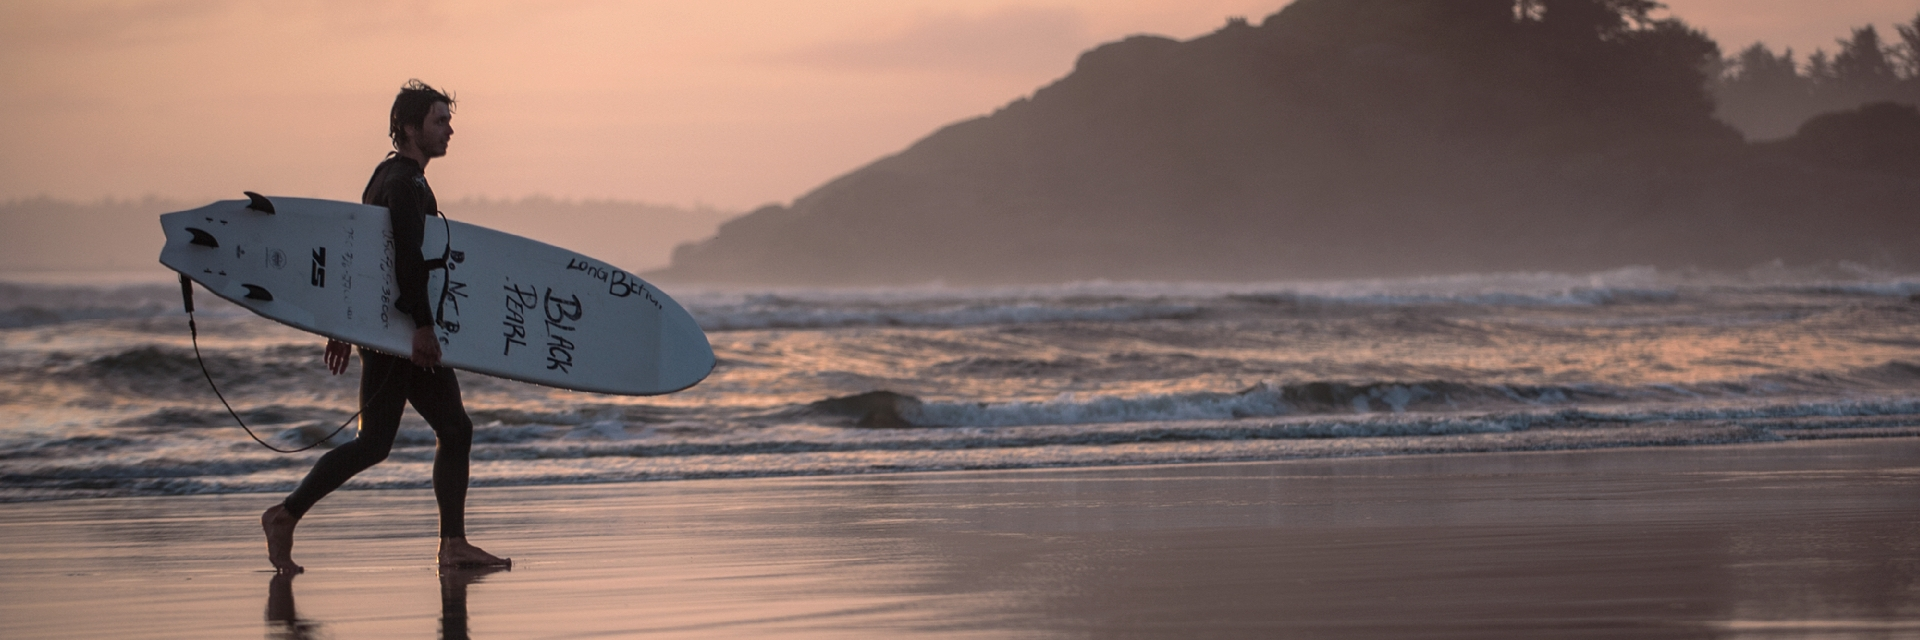 A surfer walks towards the water in Tofino.